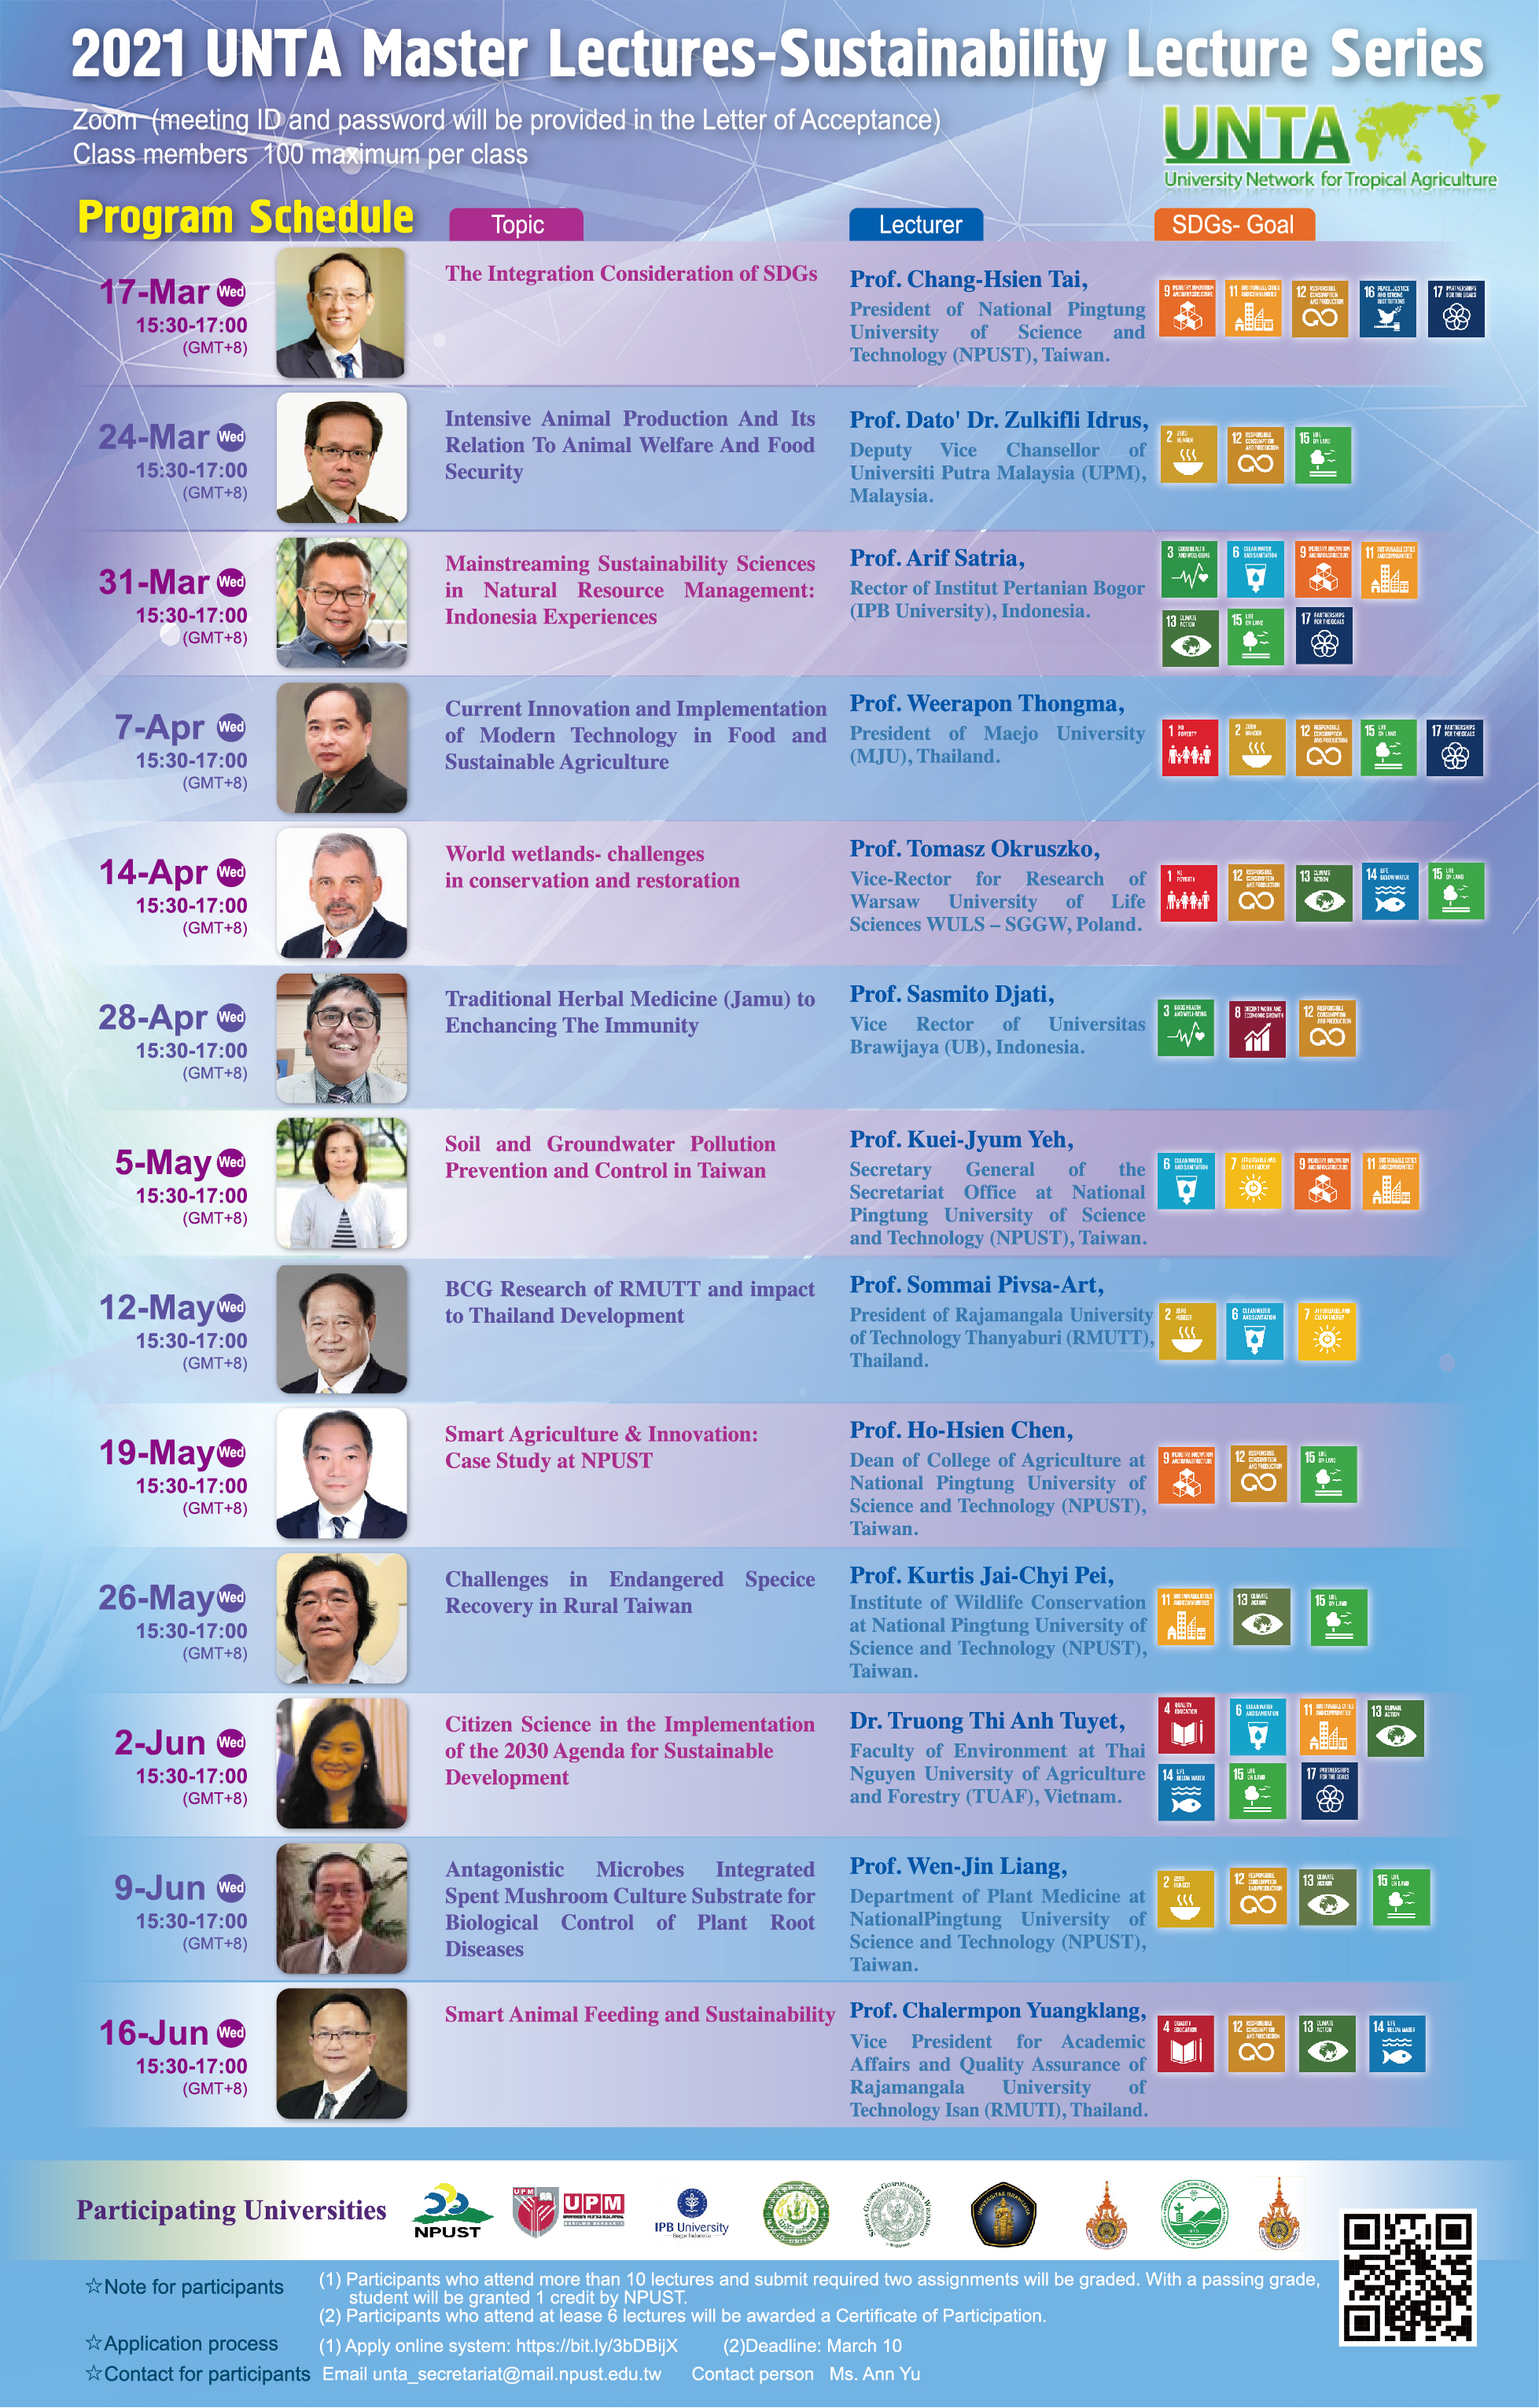 UNTA Master Lectures- Sustainability Lecture Series